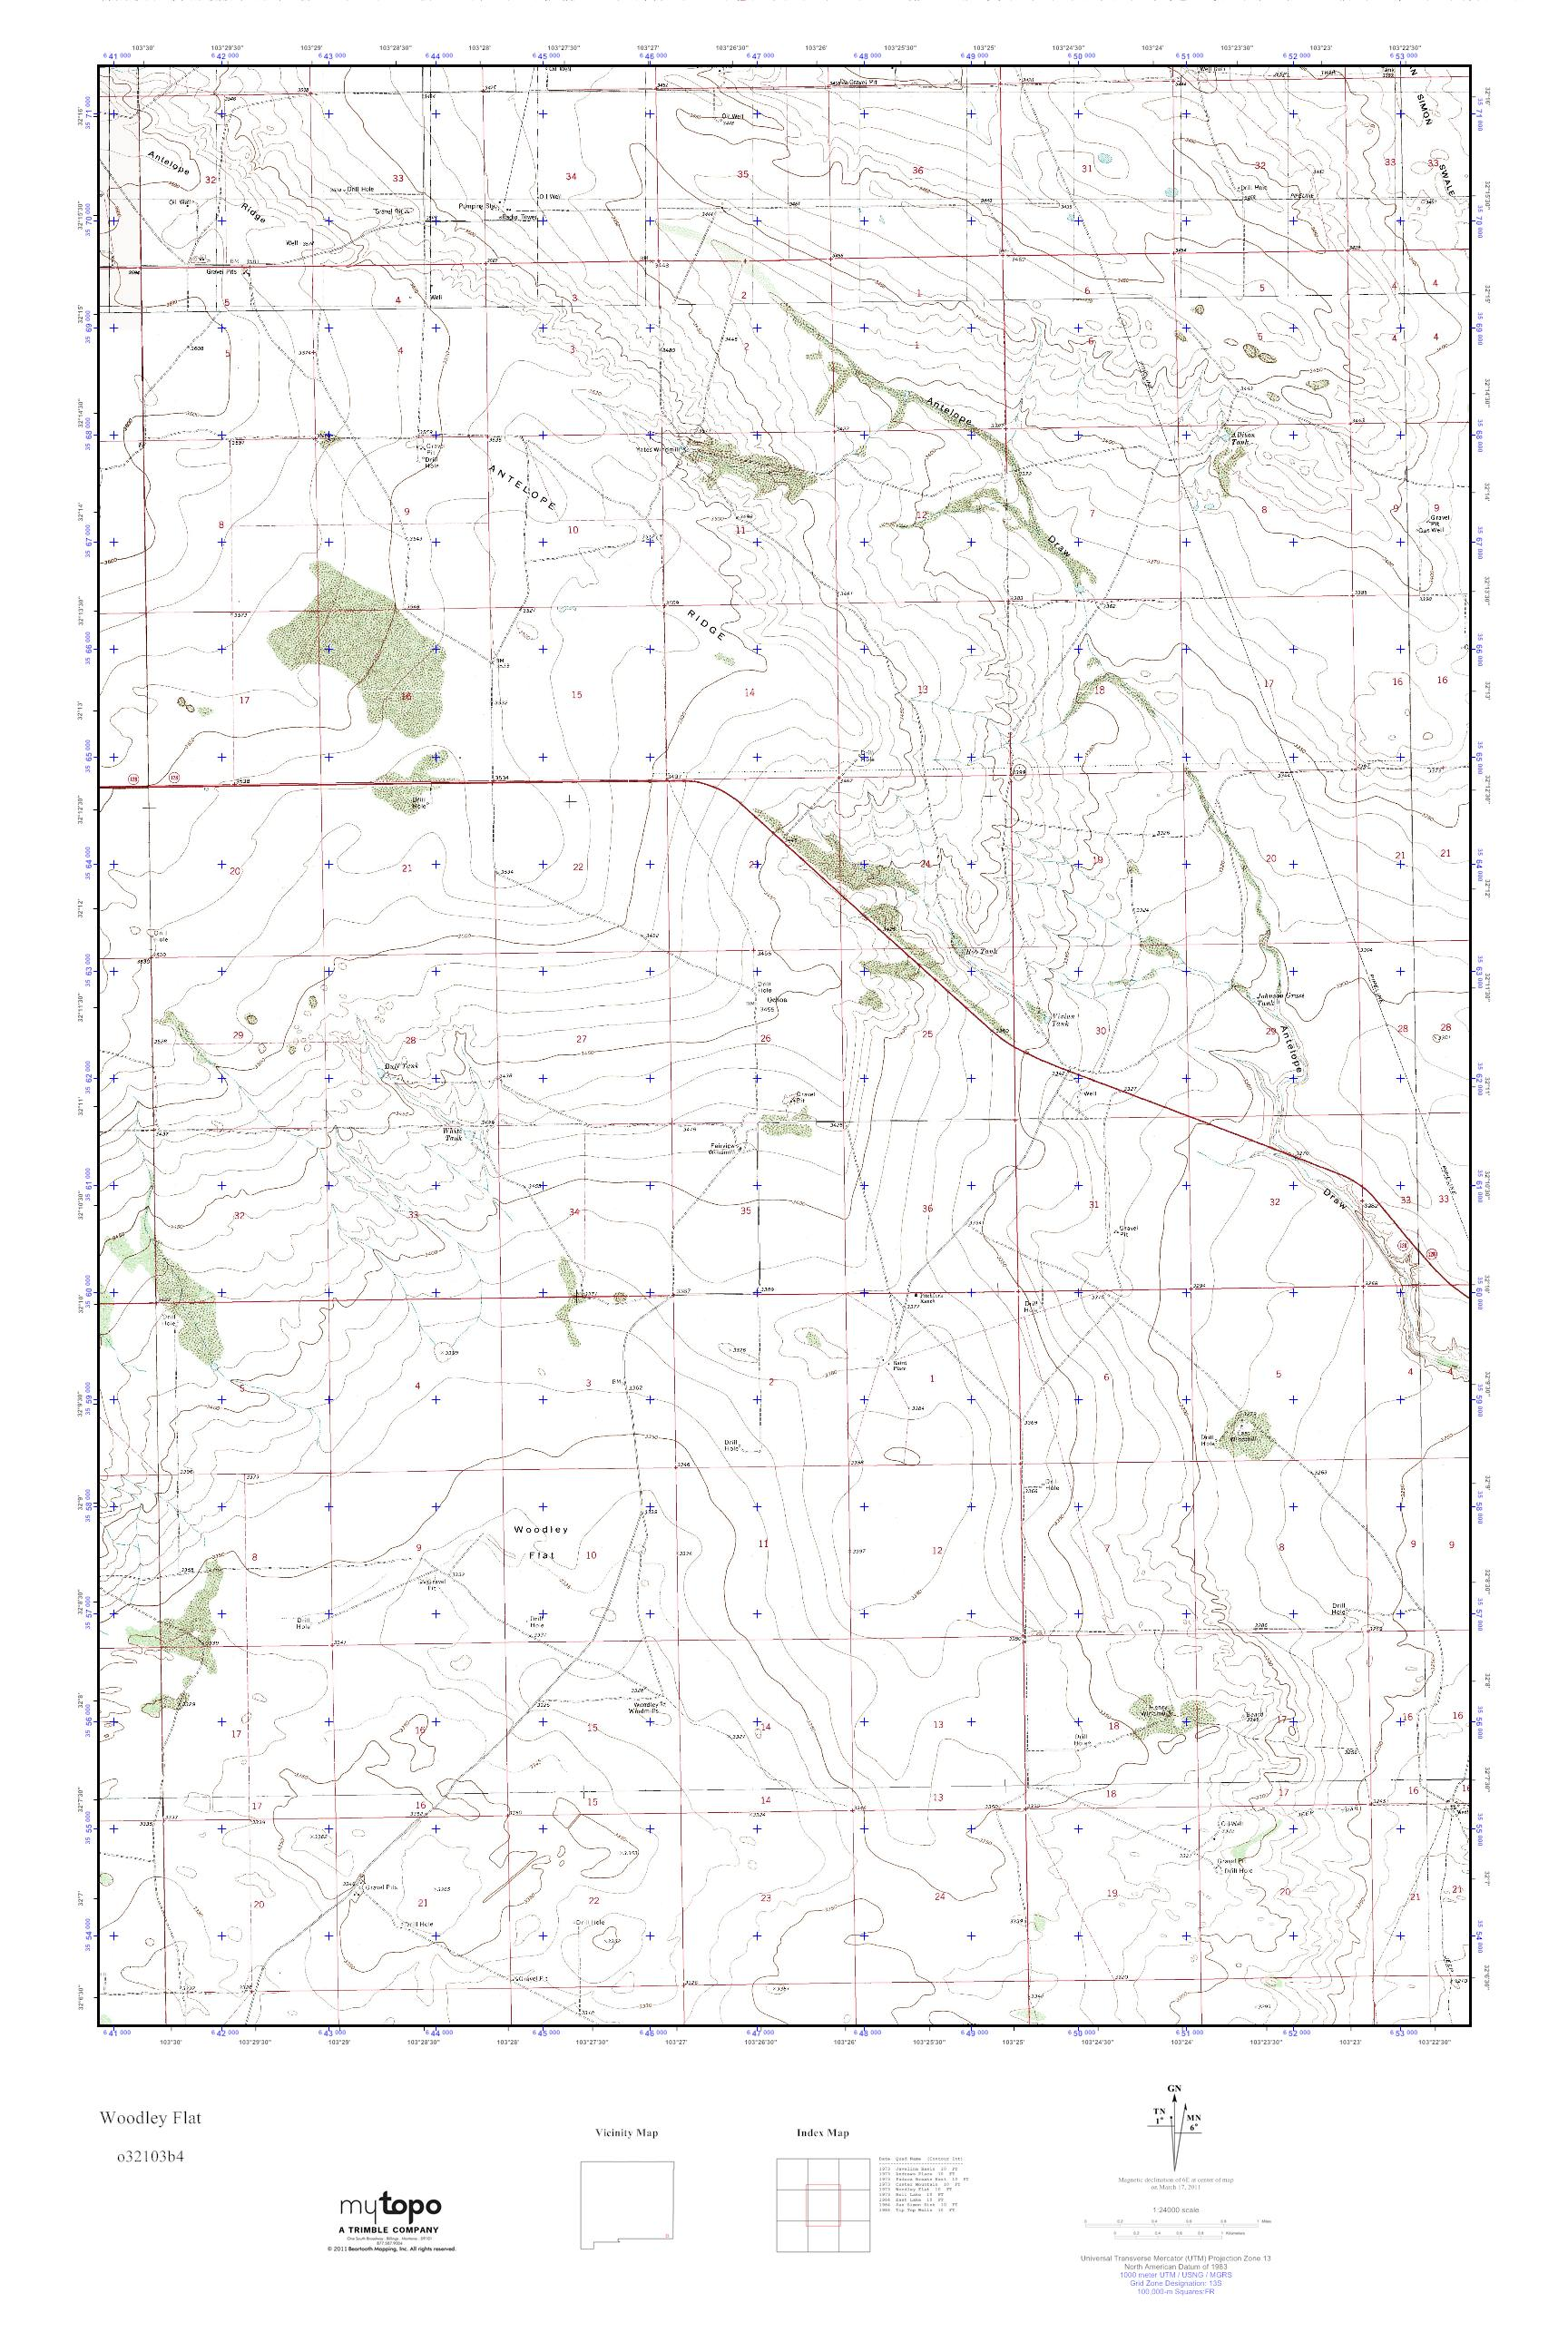 MyTopo Woodley Flat New Mexico USGS Quad Topo Map